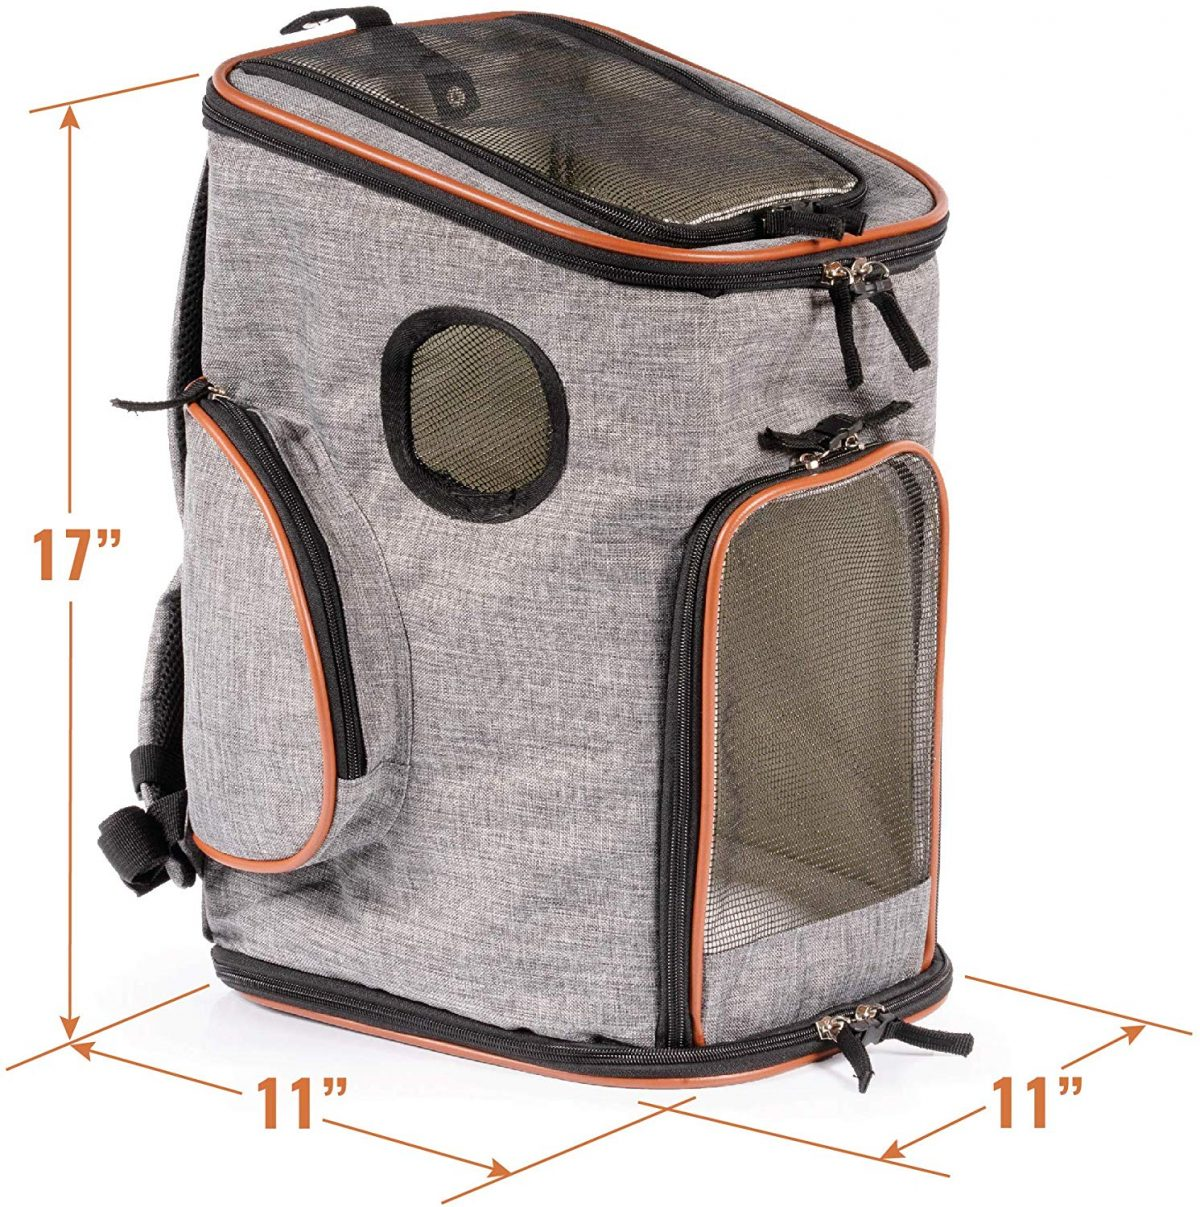 "Photo of an empty grey soft-sided dog carrier pack by Pawfect Pets with brown accents and measurements for each side of the bag, measured 11"" by 11"" by 17"""